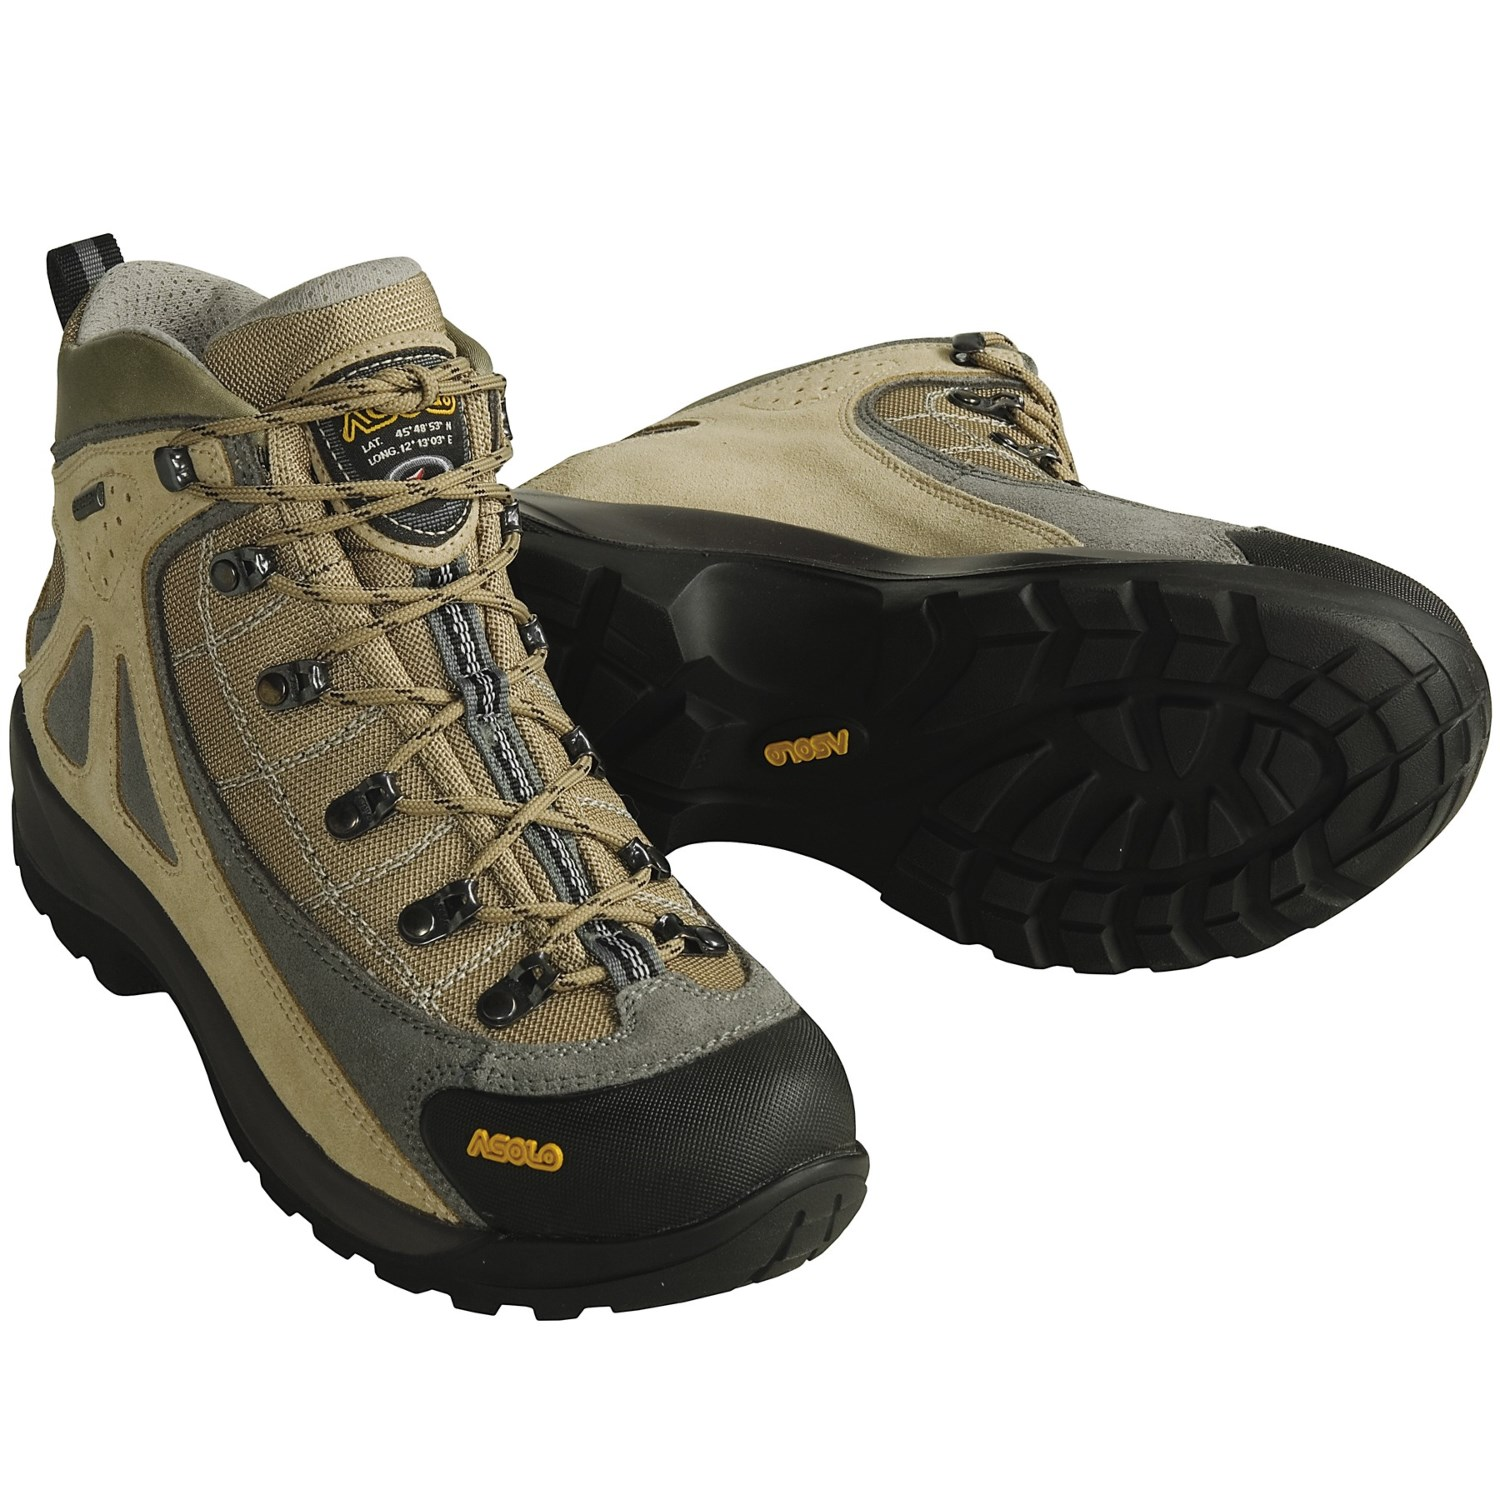 Best Baclpacking Shoes For Women